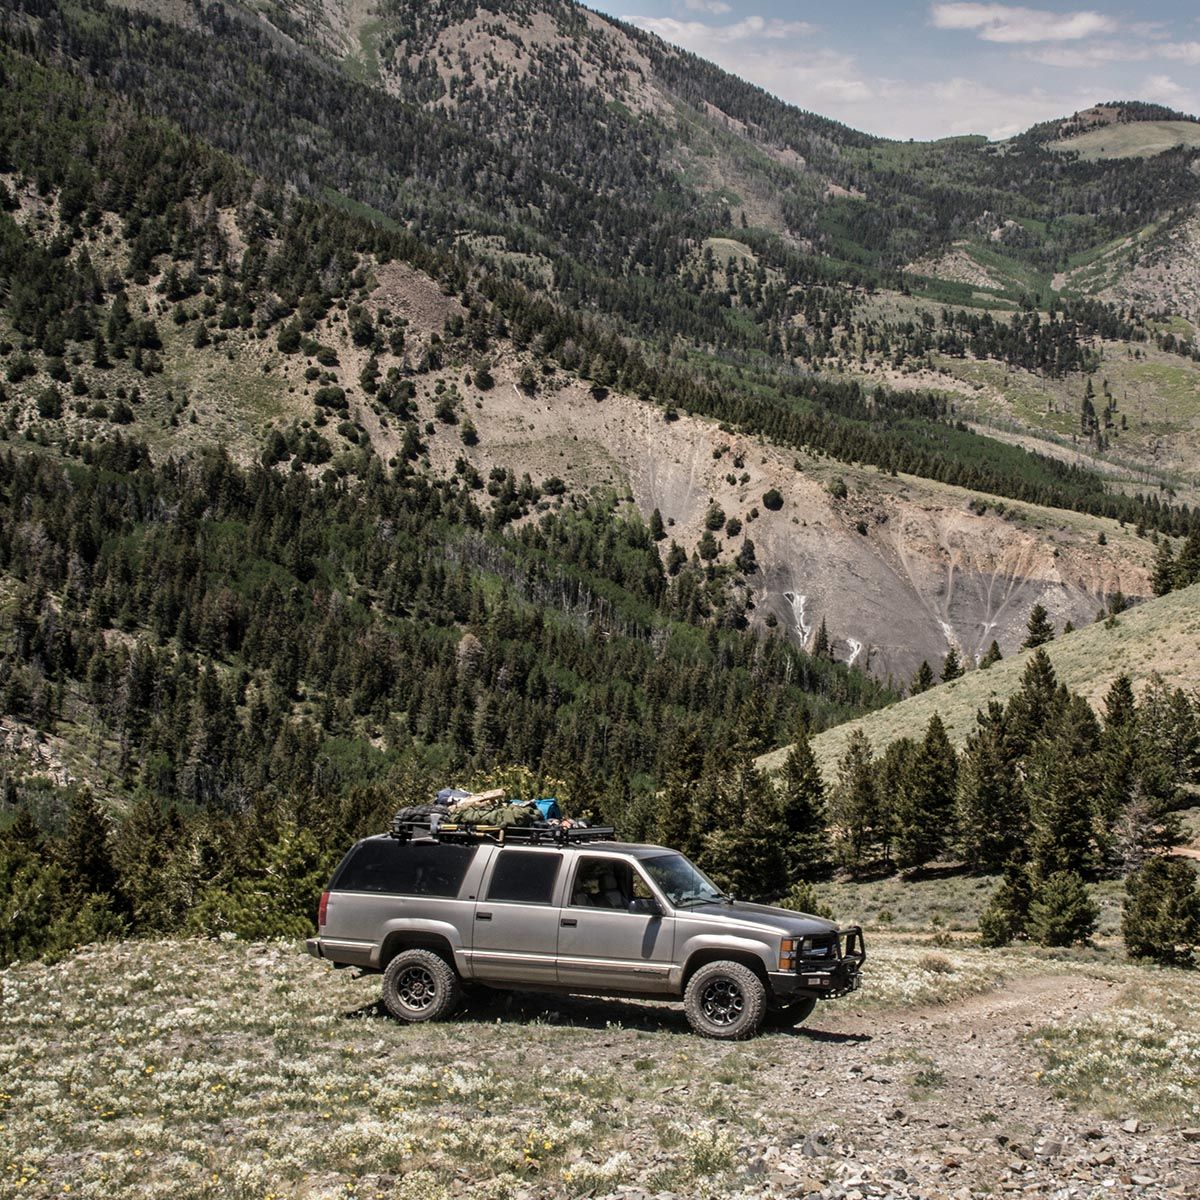 4x4 tours pictured in front of rocky mountains - adventure travel at its best